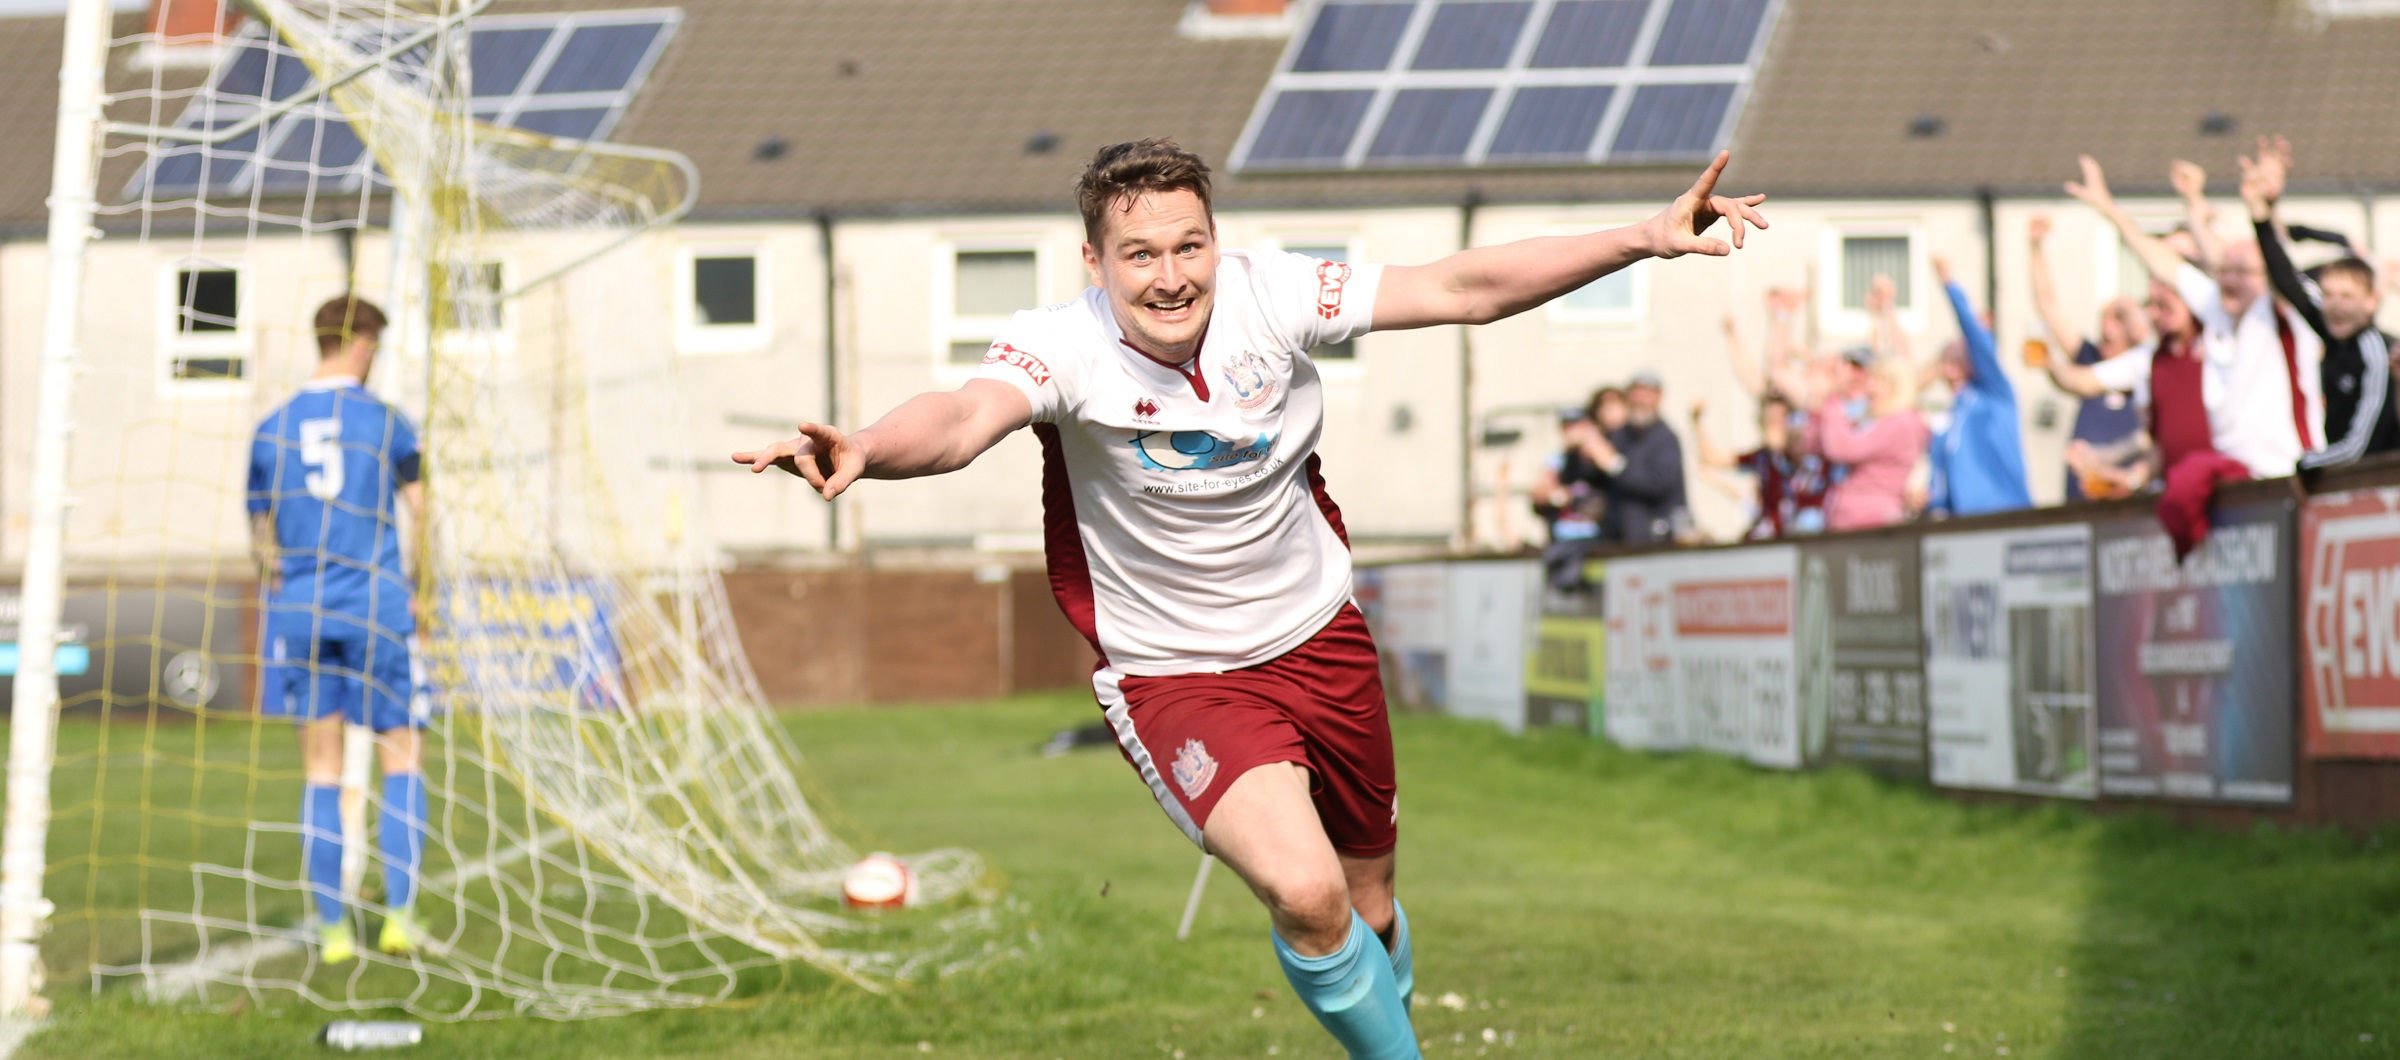 Skelmersdale United 0-1 South Shields: No title yet for Mariners